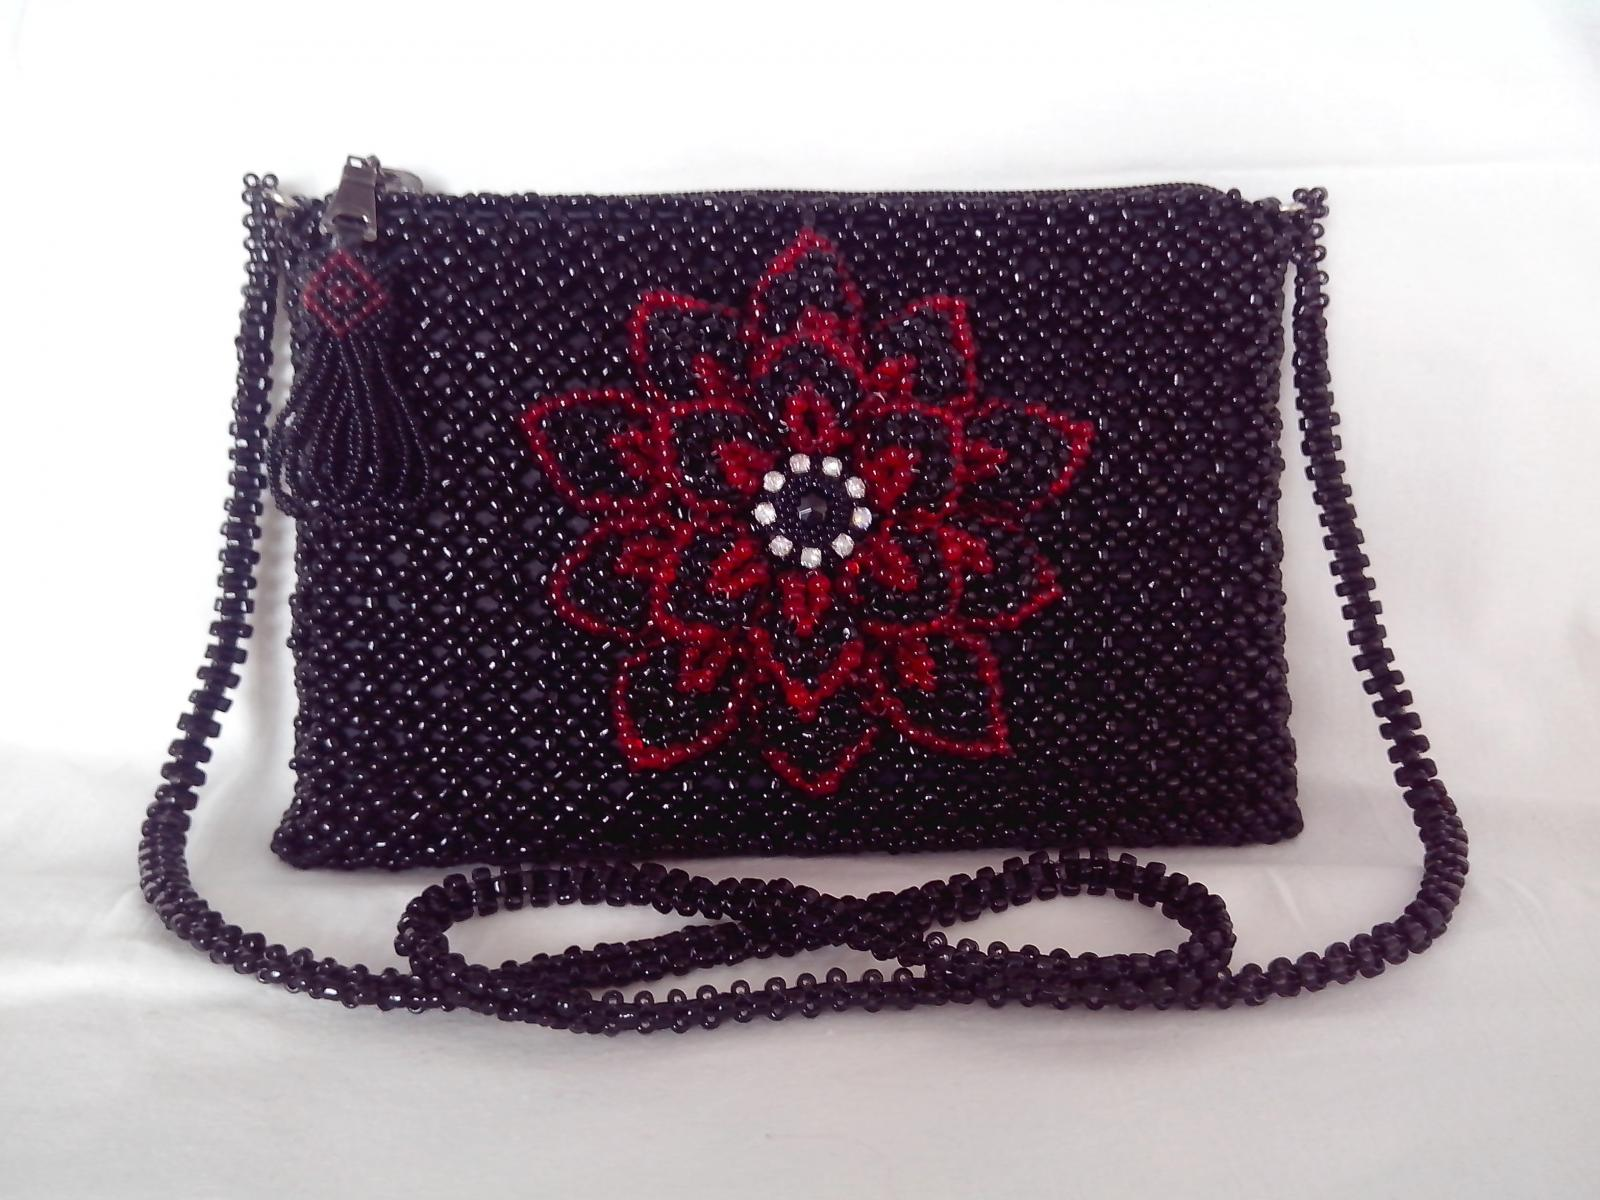 15-bag-beaded-clutch-bedsmagic